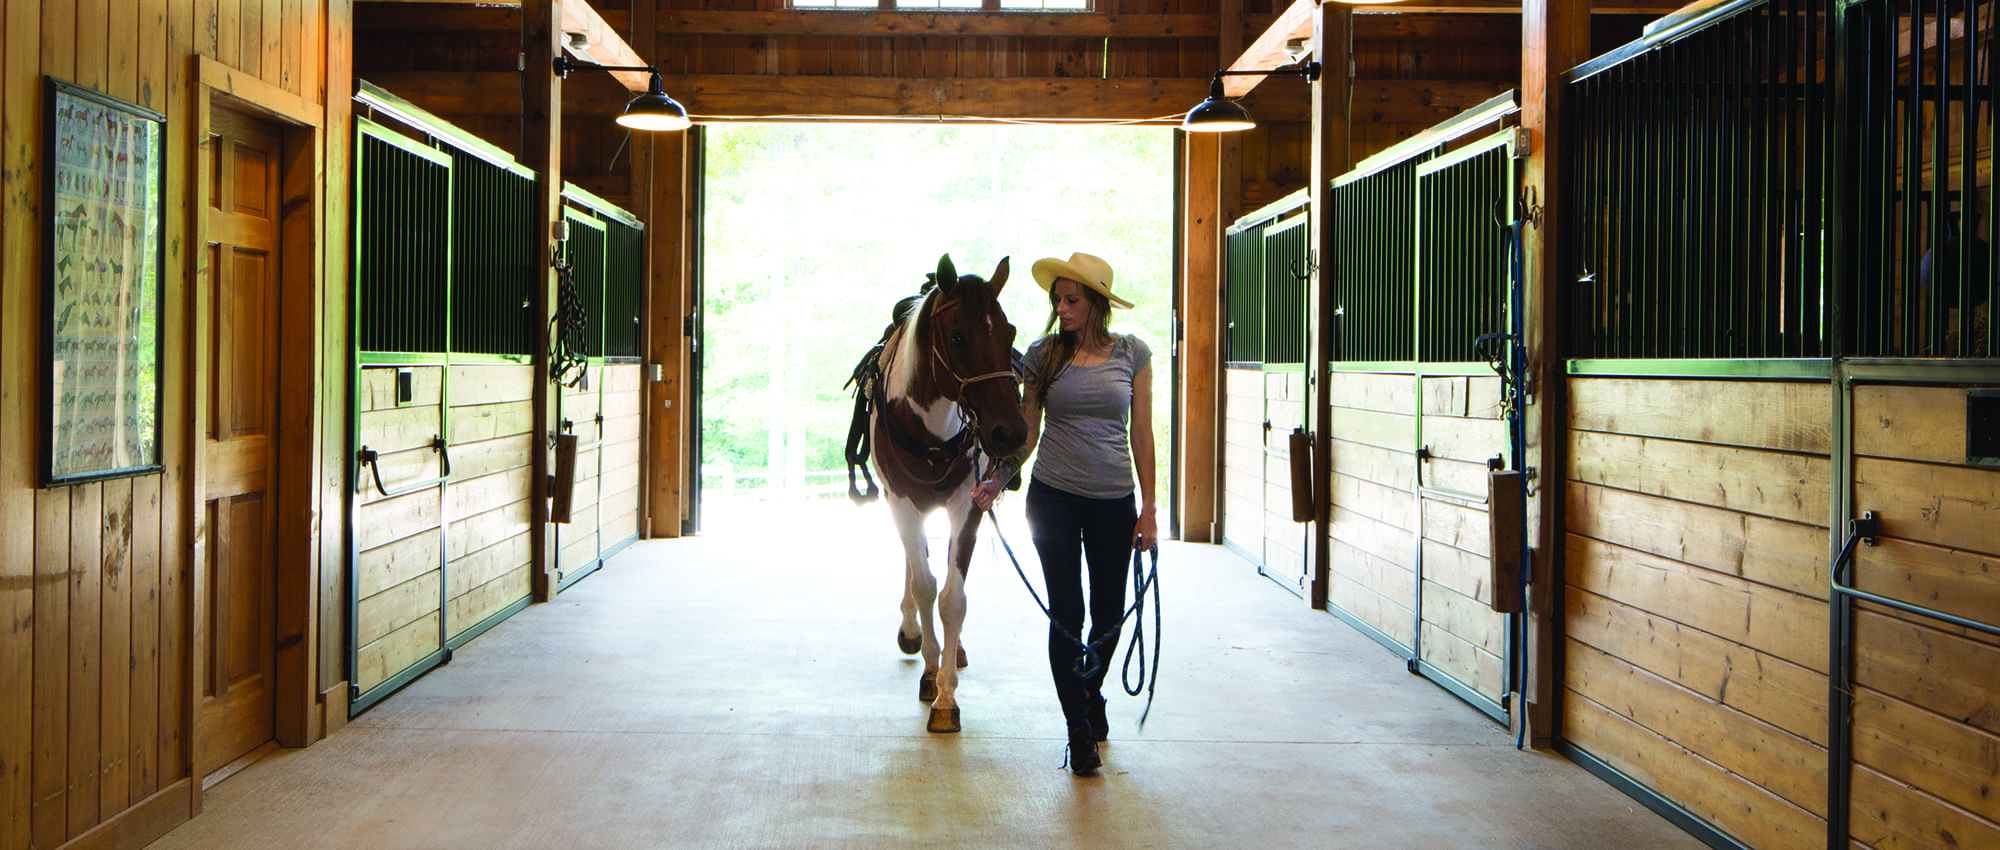 The Equestrian Center at The Cliffs at Keowee Vineyards